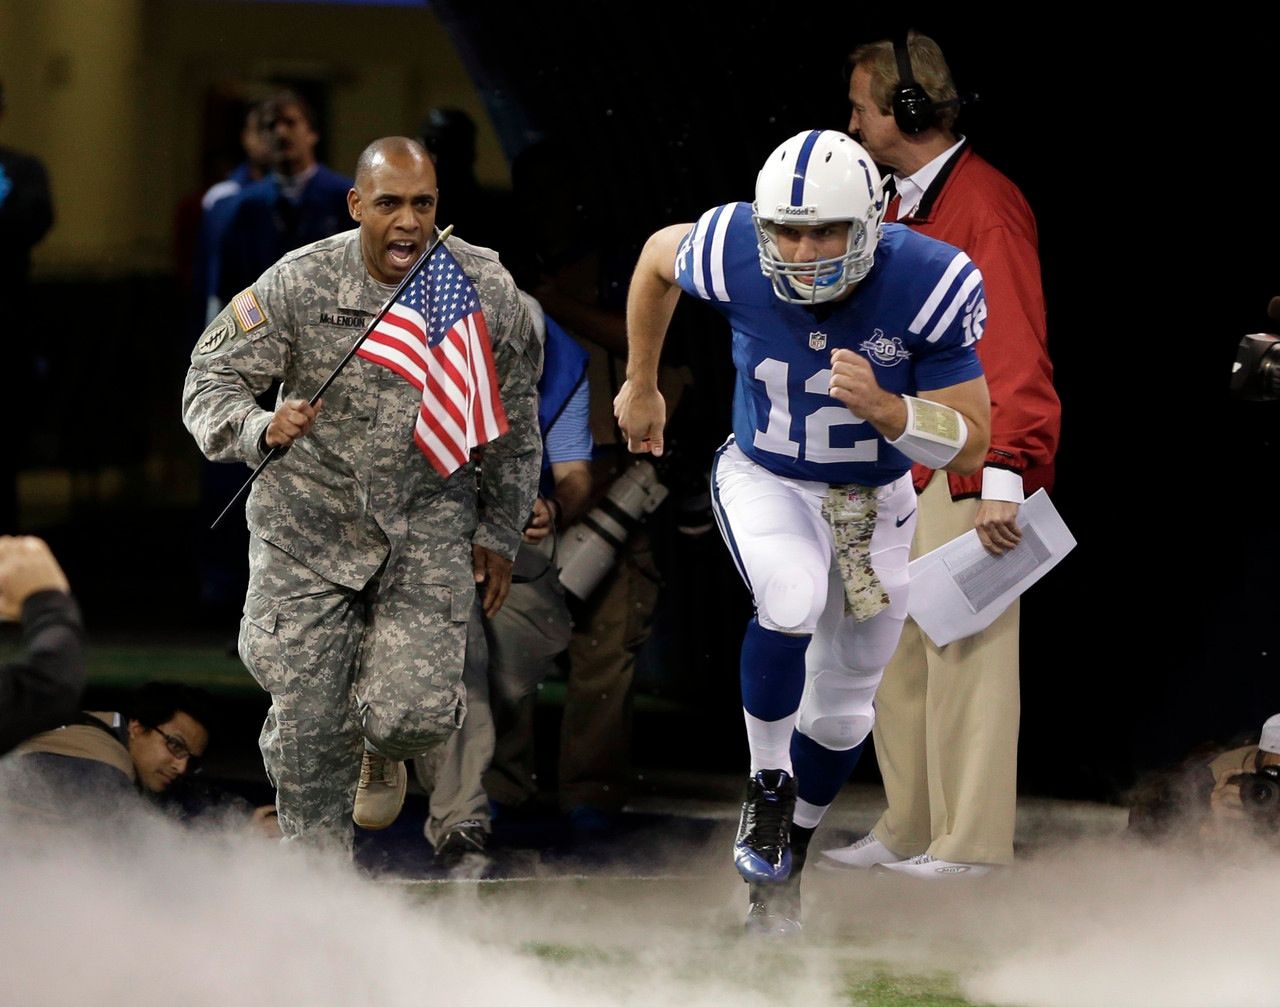 NFL Salute to Service with Military